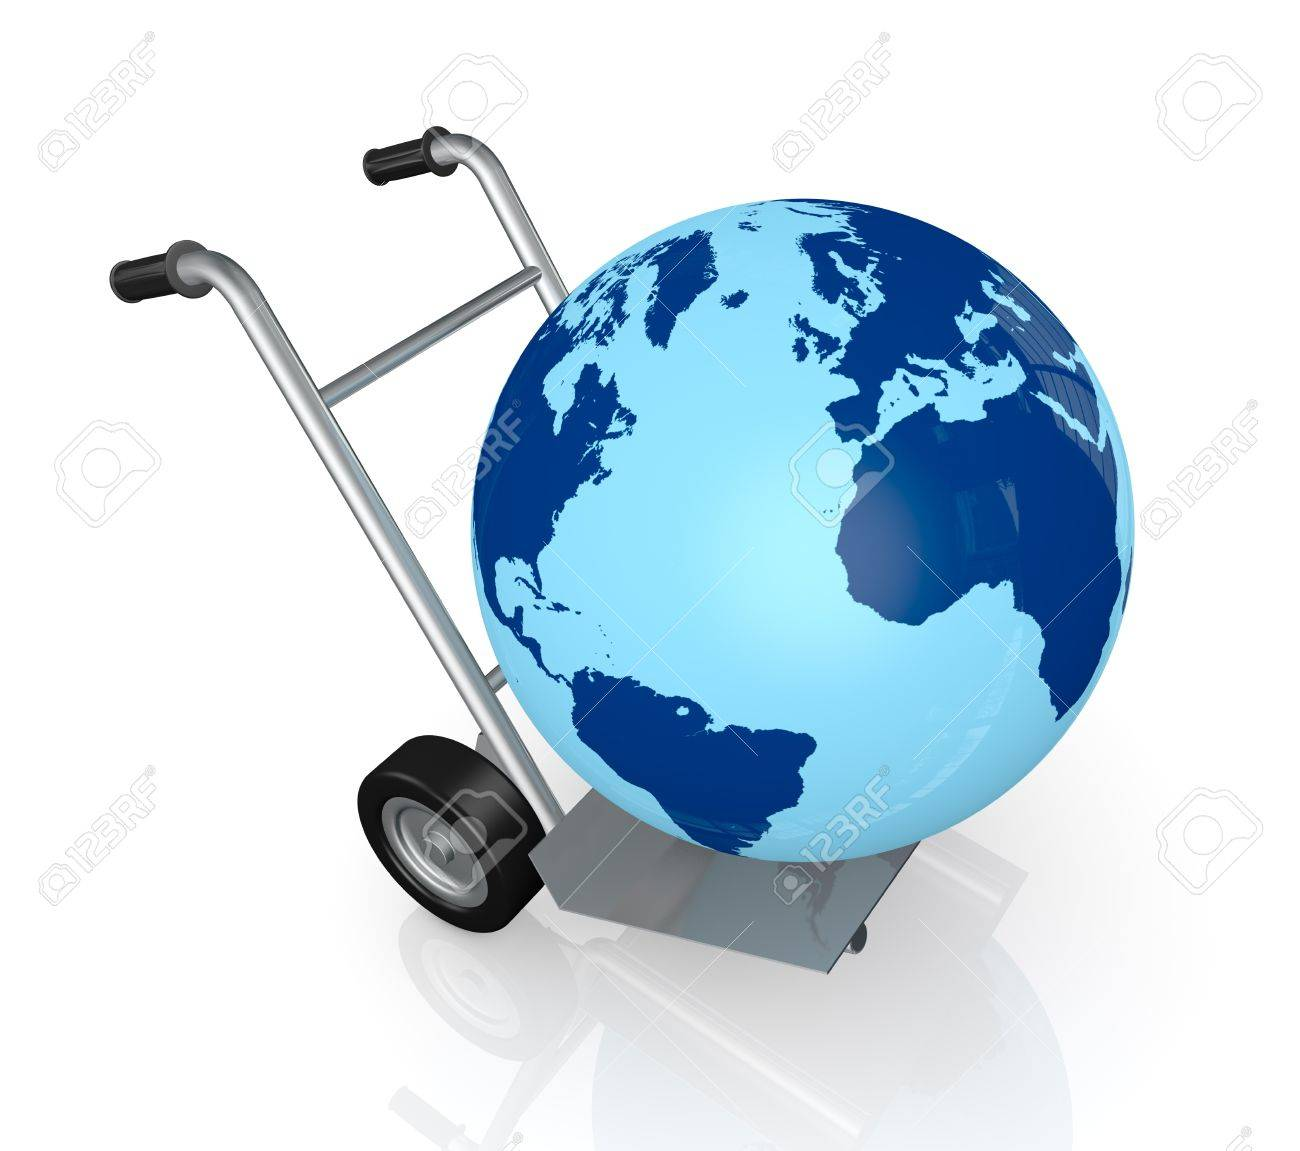 closeup of a hand truck (trolley) with a world globe on it  (3d render) Stock Photo - 13727385